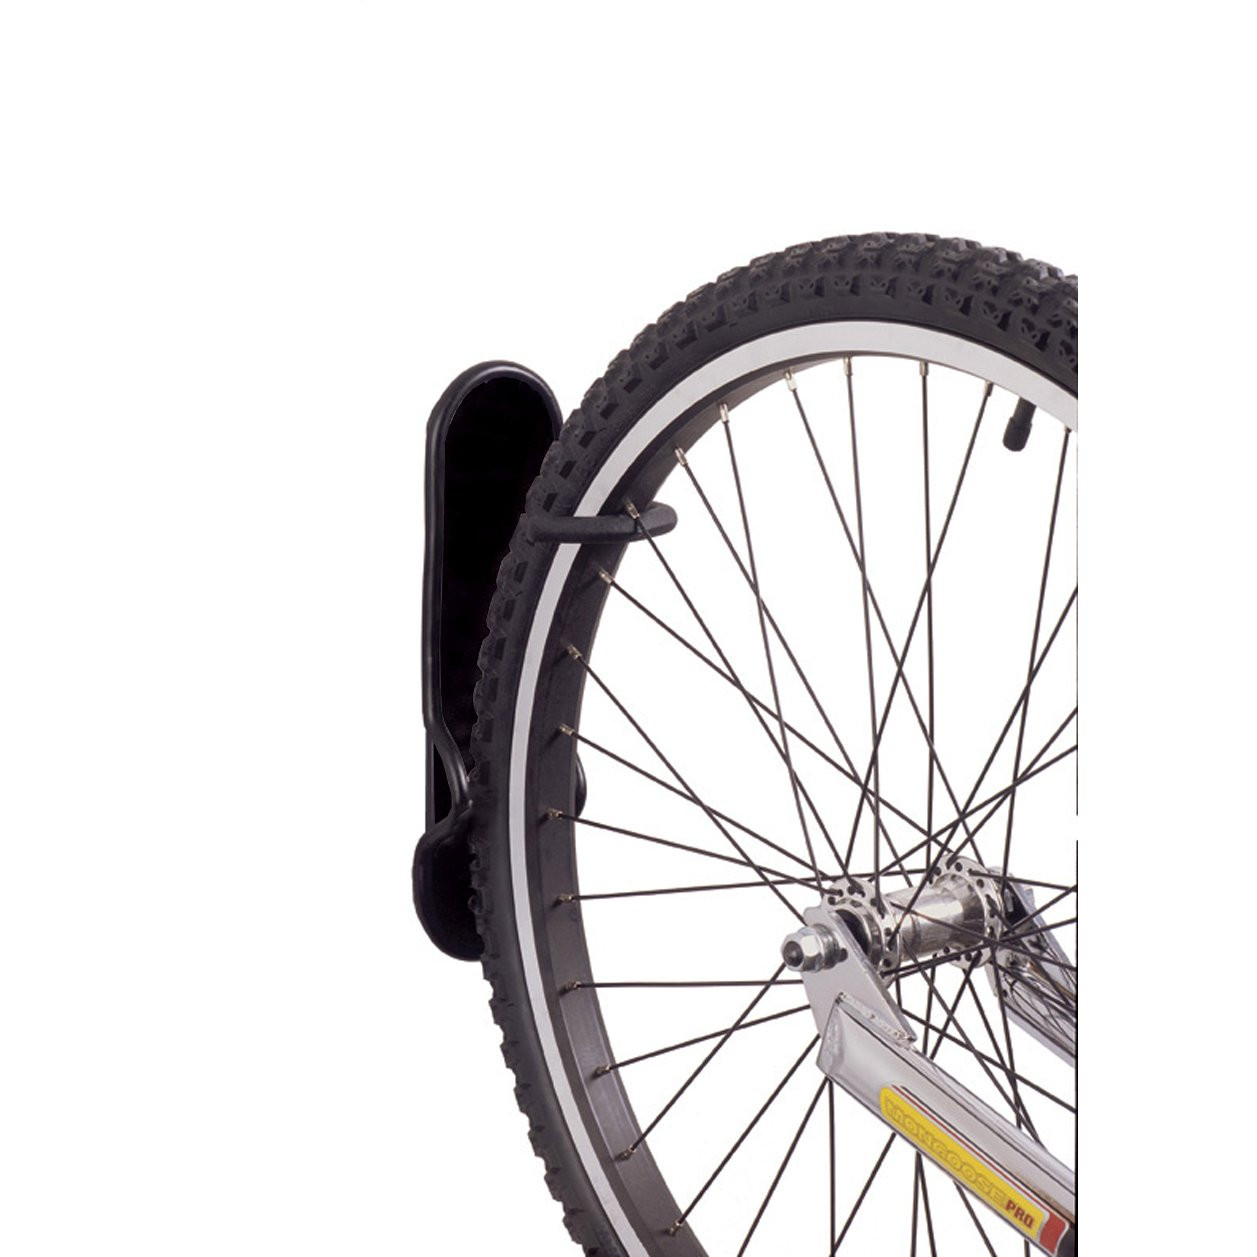 Best ideas about Bike Rack Wall Mounted Vertical . Save or Pin Gear Up Inc Black Series 1 Bike Vertical Wall Mounted Now.